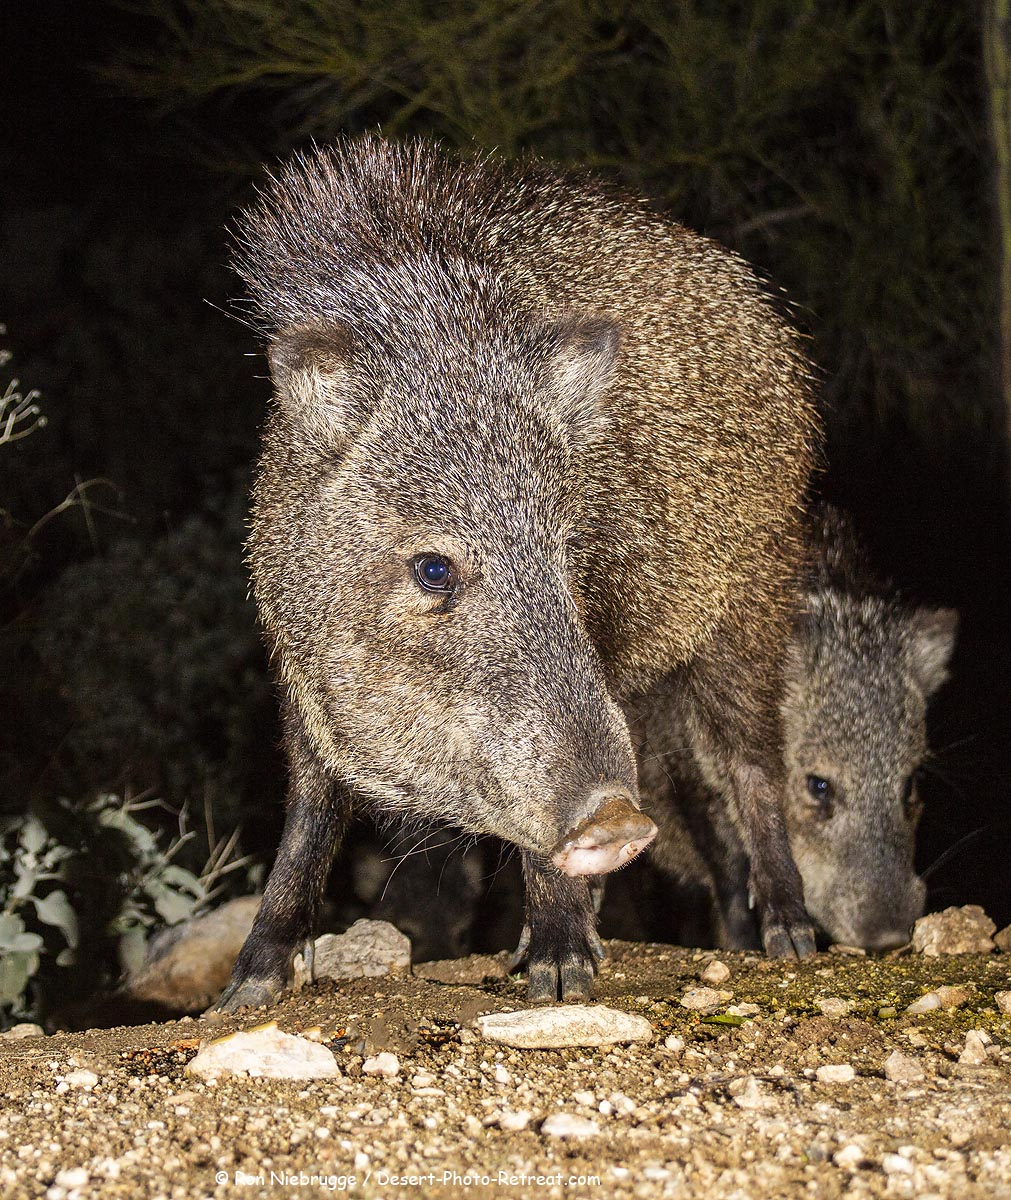 Javelina at the Desert Photo Retreat near Tucson, Arizona.